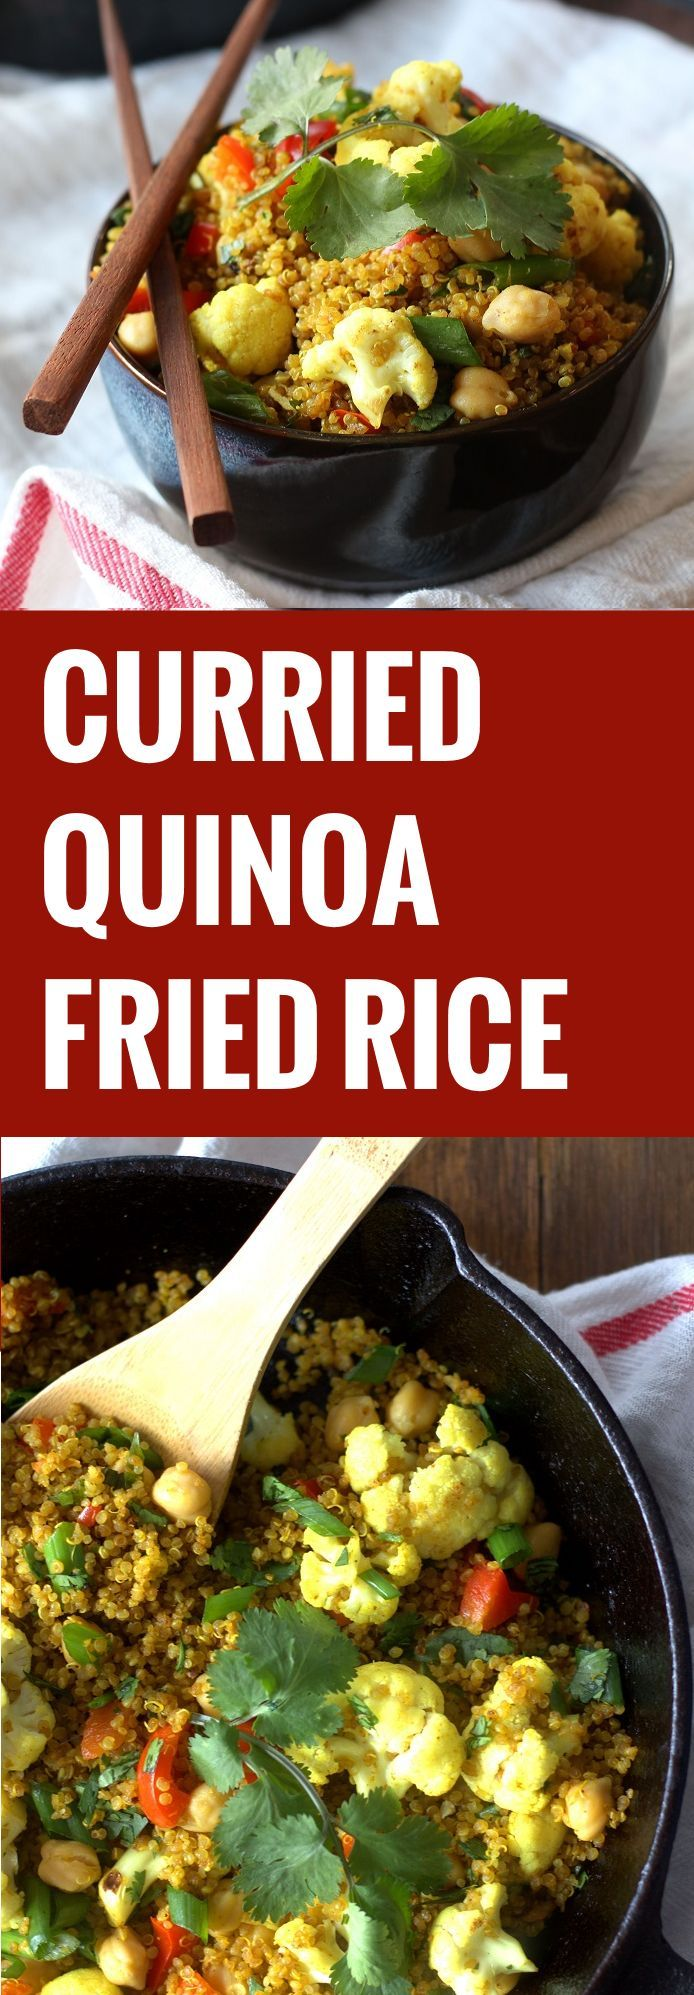 Quinoa Instead Of Rice With Indian Food